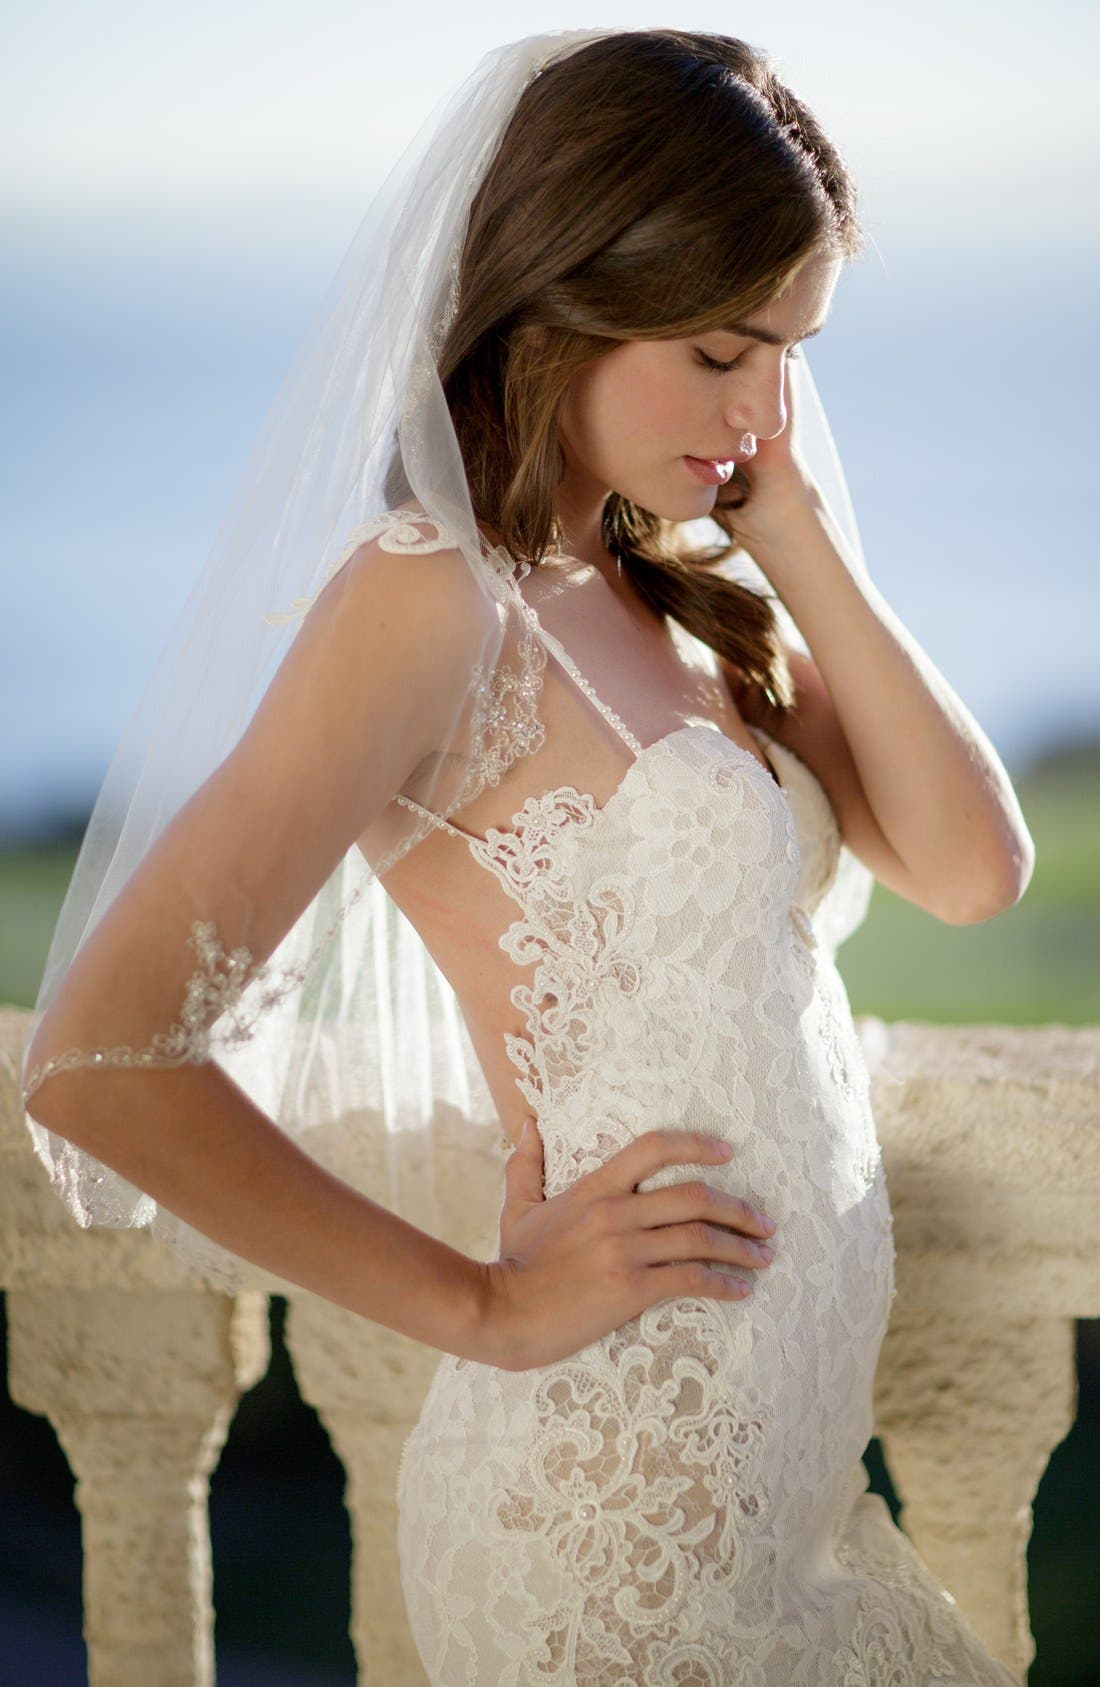 Alternate Image 1 Selected - Brides & Hairpins 'Sophie' Embellished Tulle Veil